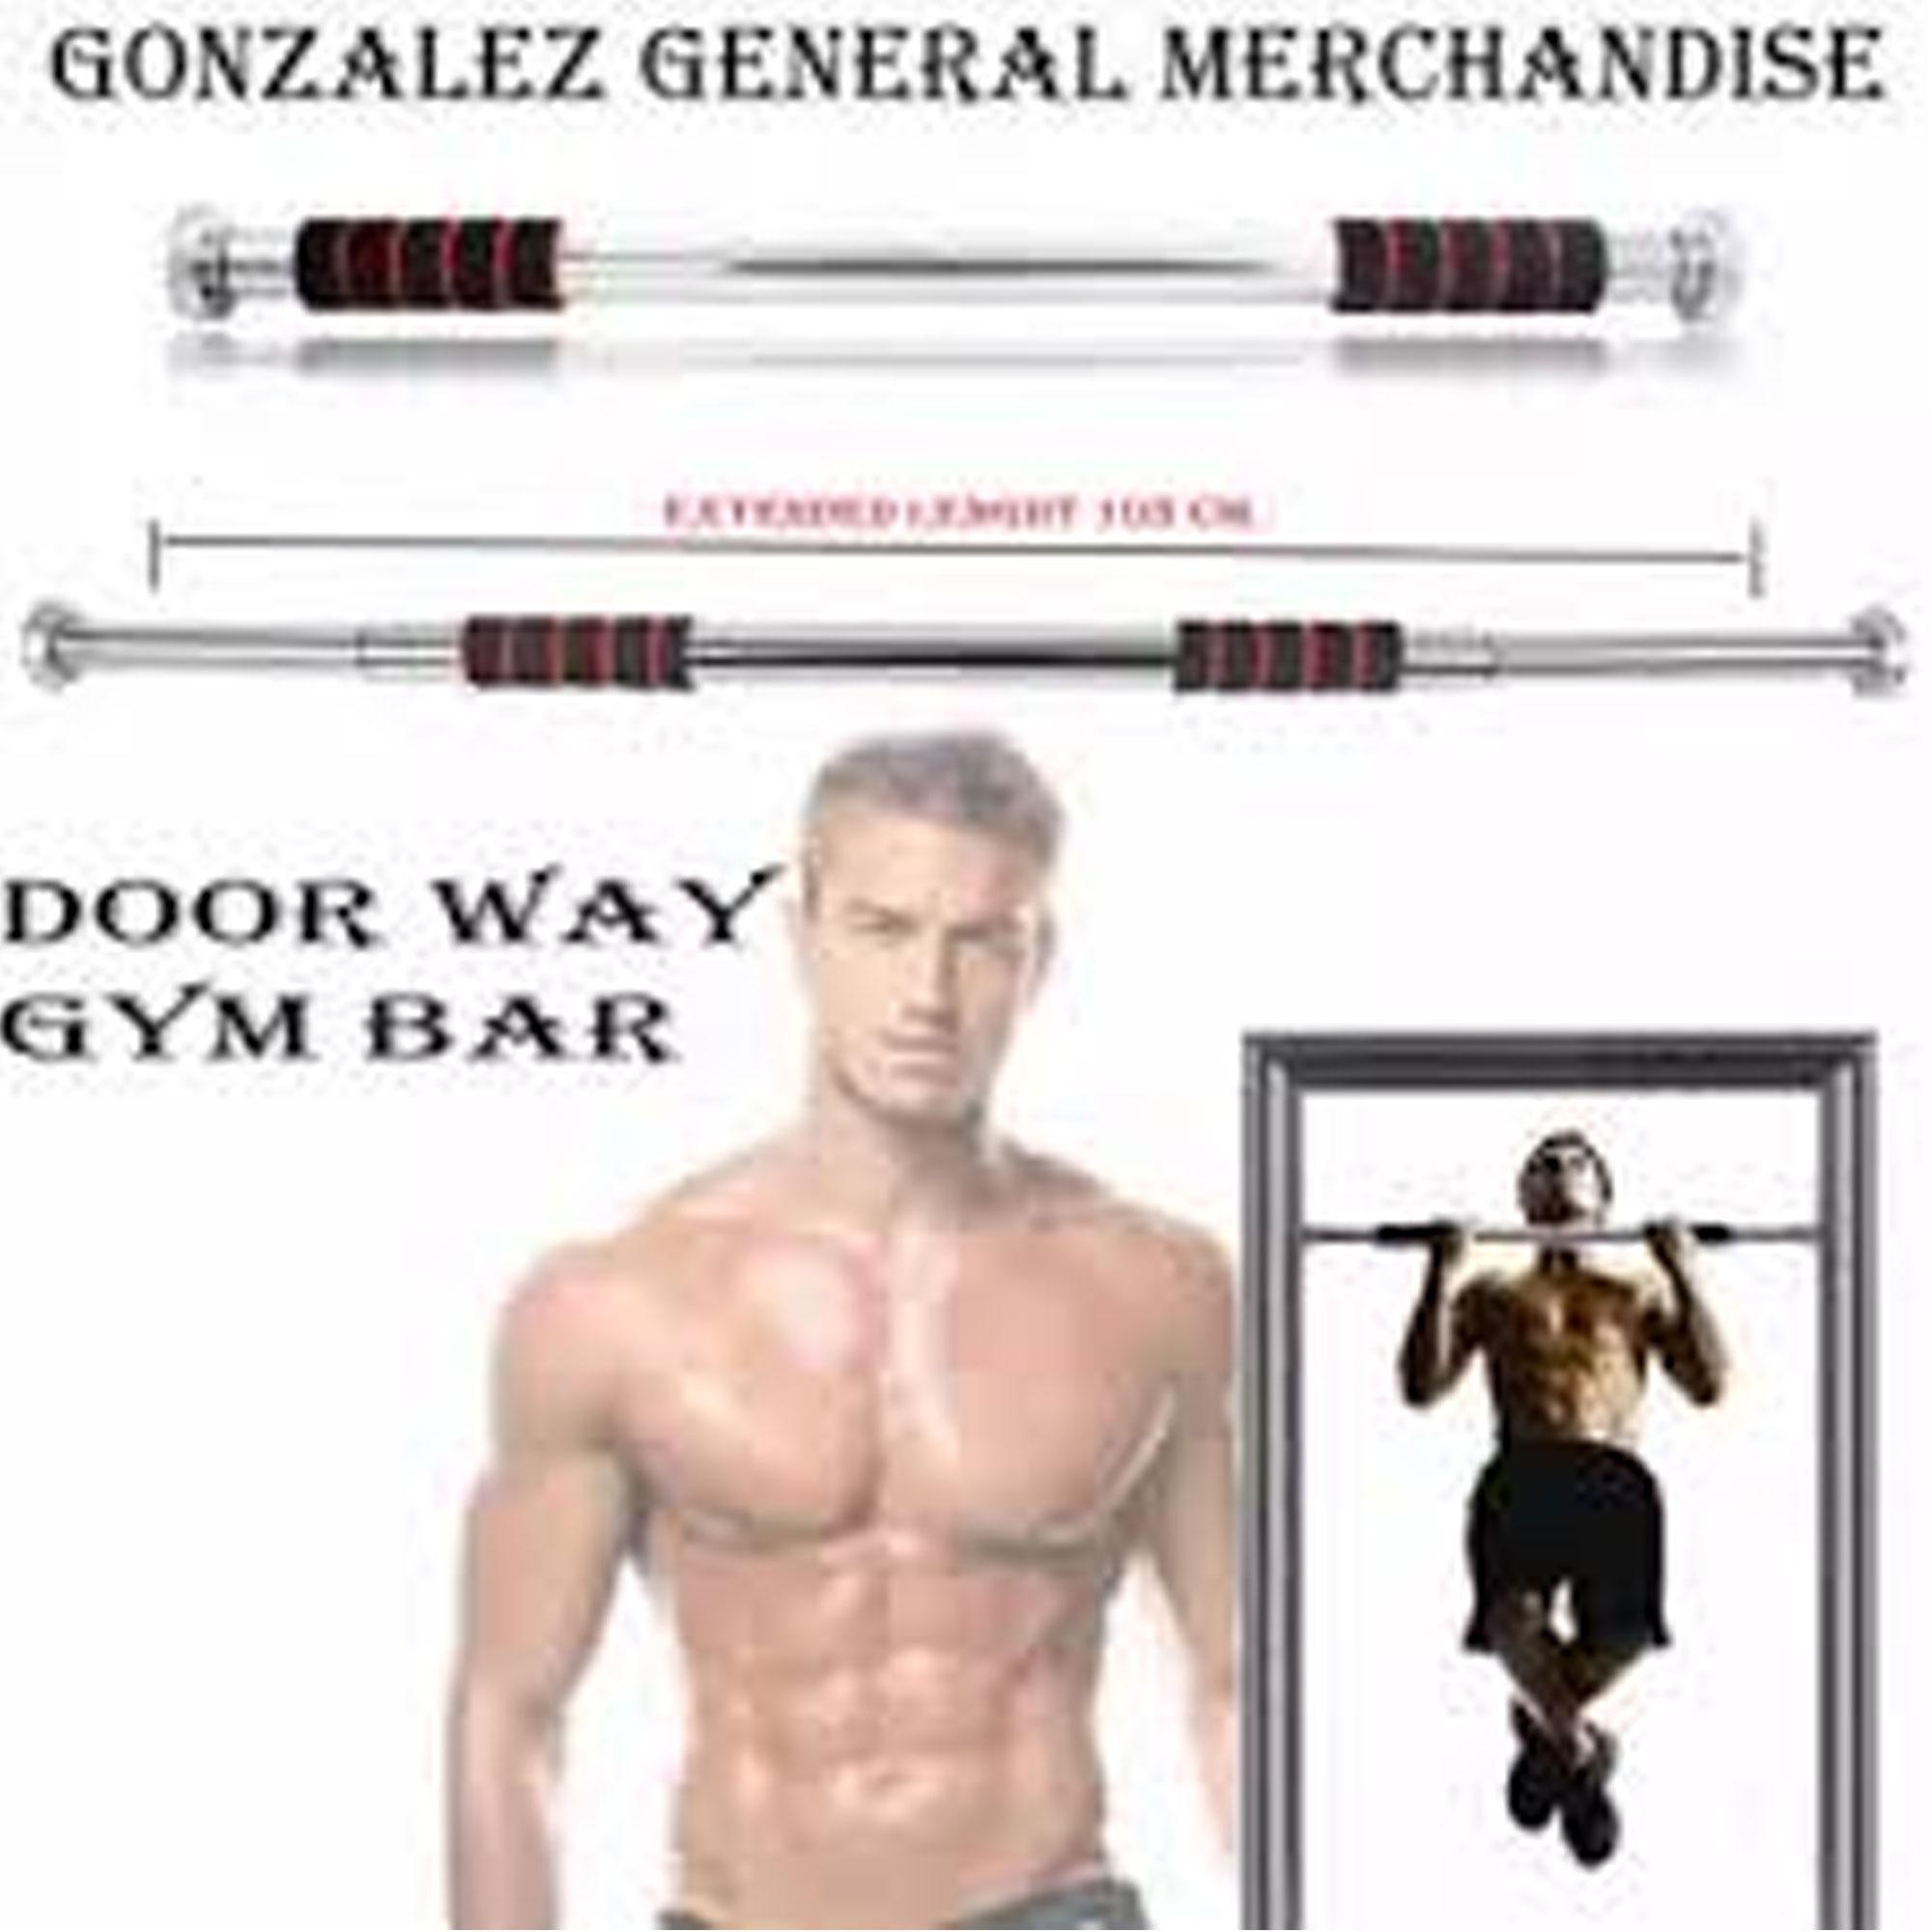 4e65ca73bbb Pull Up Bars for sale - Push Up Bars Online Deals   Prices in ...